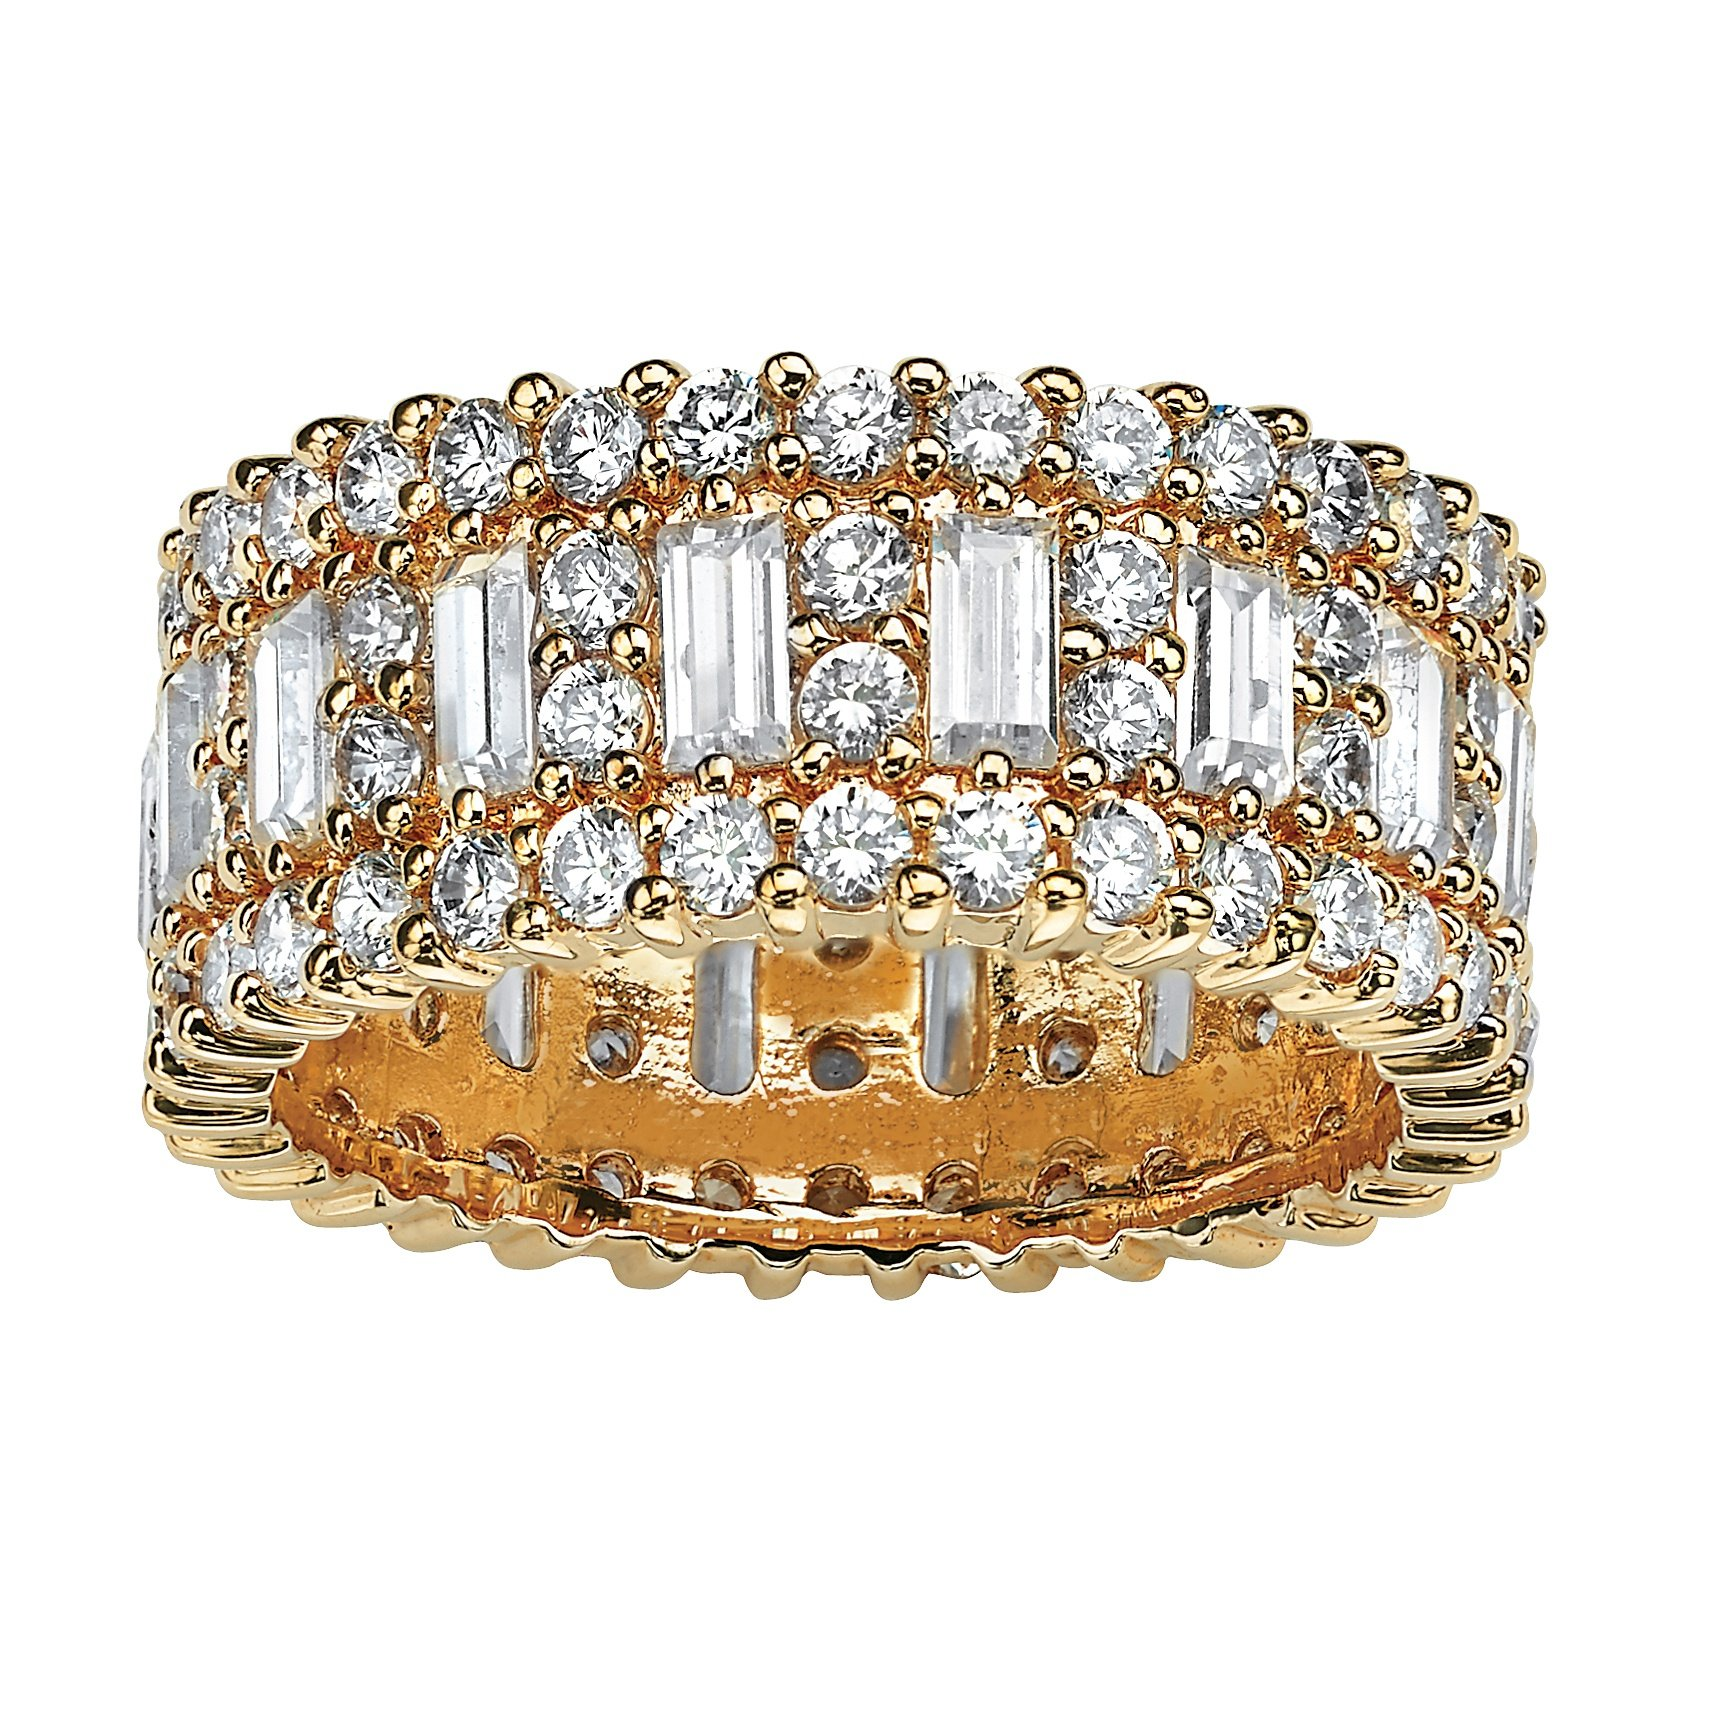 Palm Beach Jewelry Emerald-Cut and Round White Cubic Zirconia 14k Yellow Gold-Plated Eternity Ring Size 10